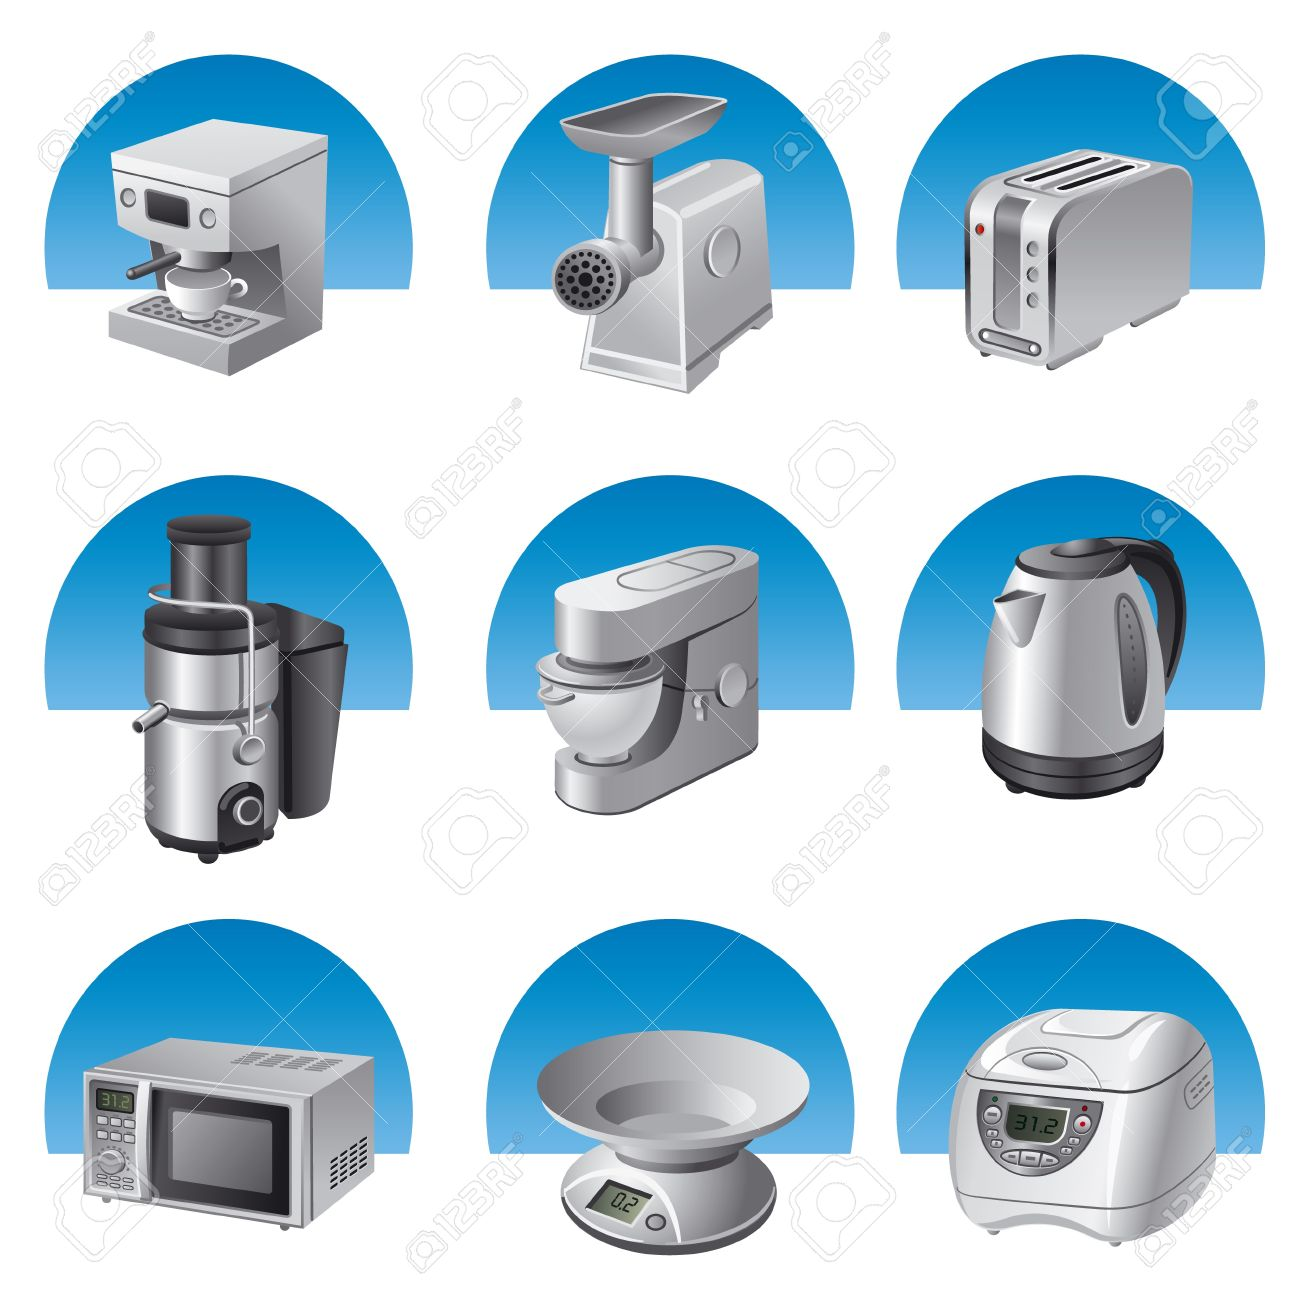 0 small kitchen appliances stock illustrations, cliparts and